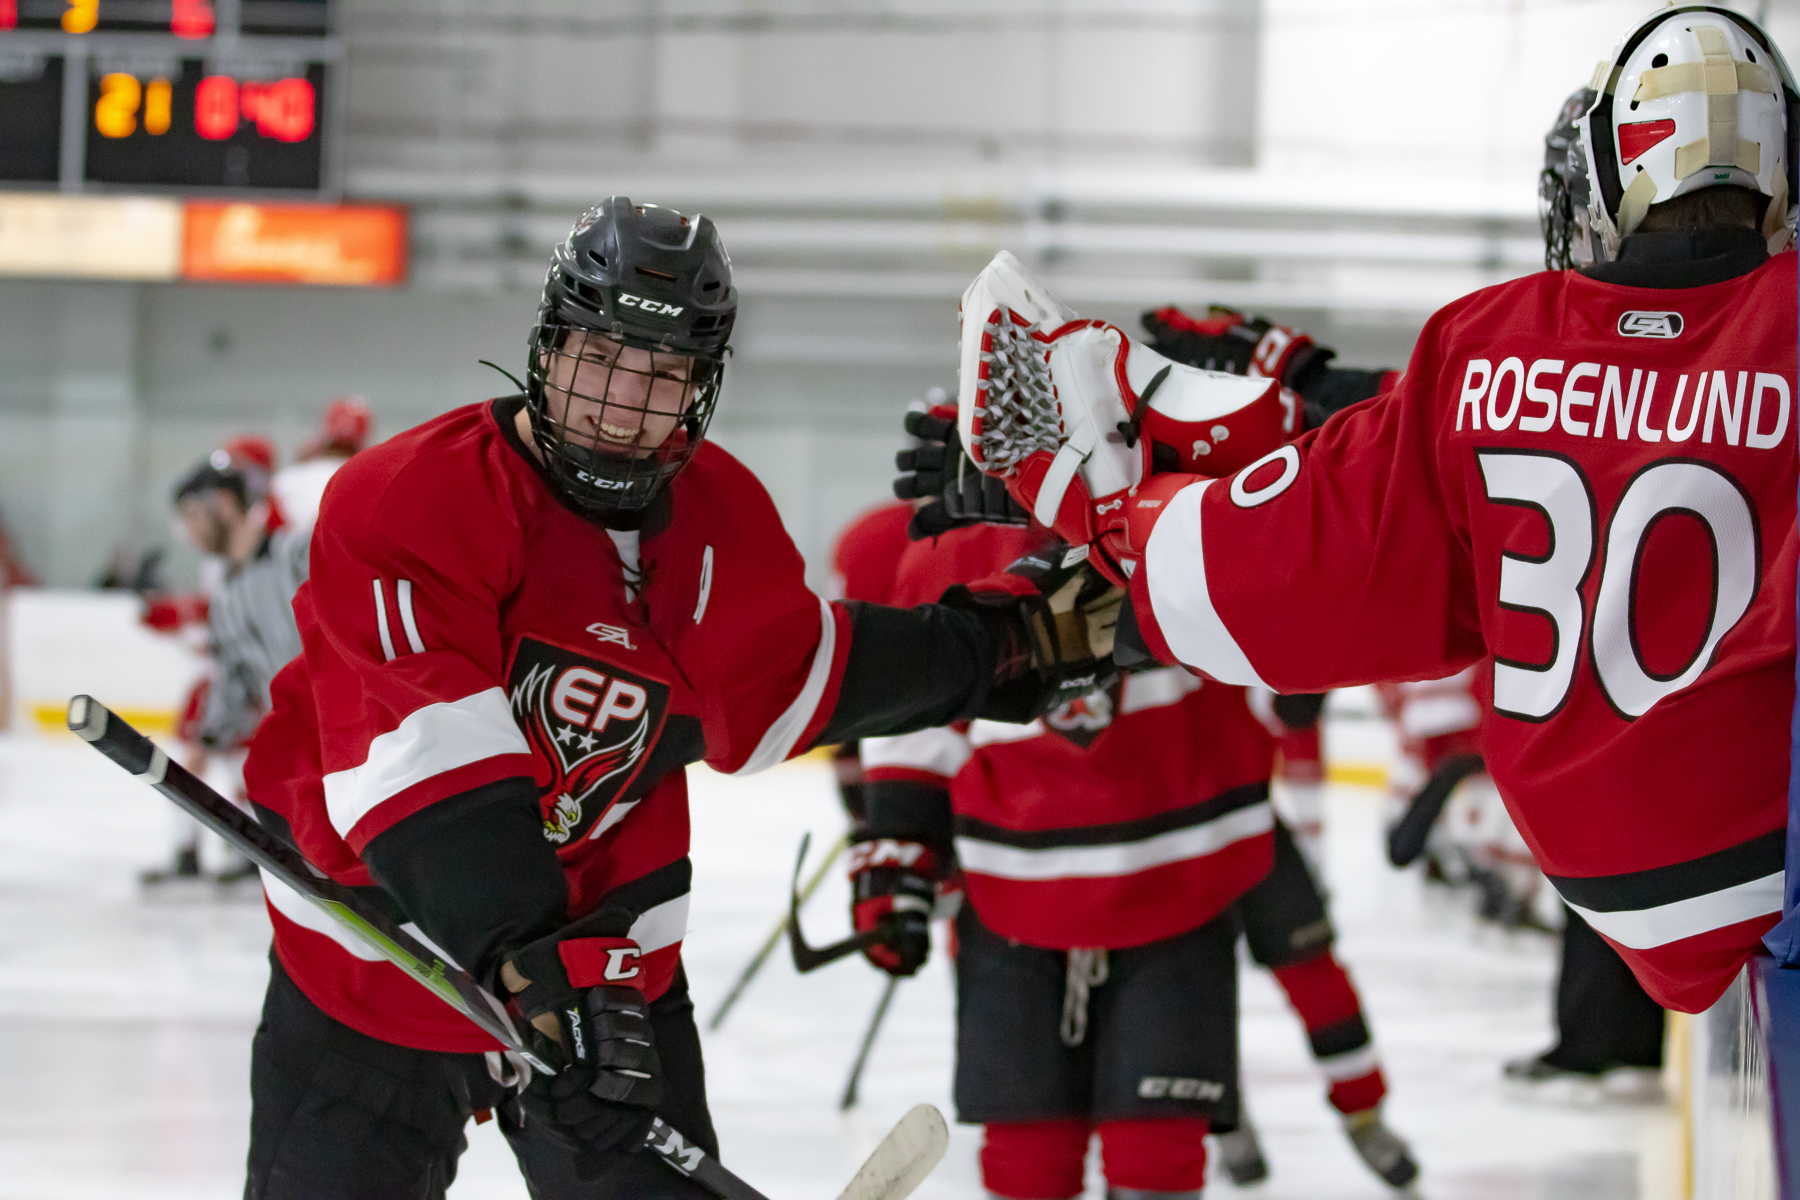 Eden Prairie's Carter Batchelder celebrates with his teammates after scoring a short-handed goal in the third period to put the Eagles up 6-2. Photo by Gary Mukai, SportsEngine